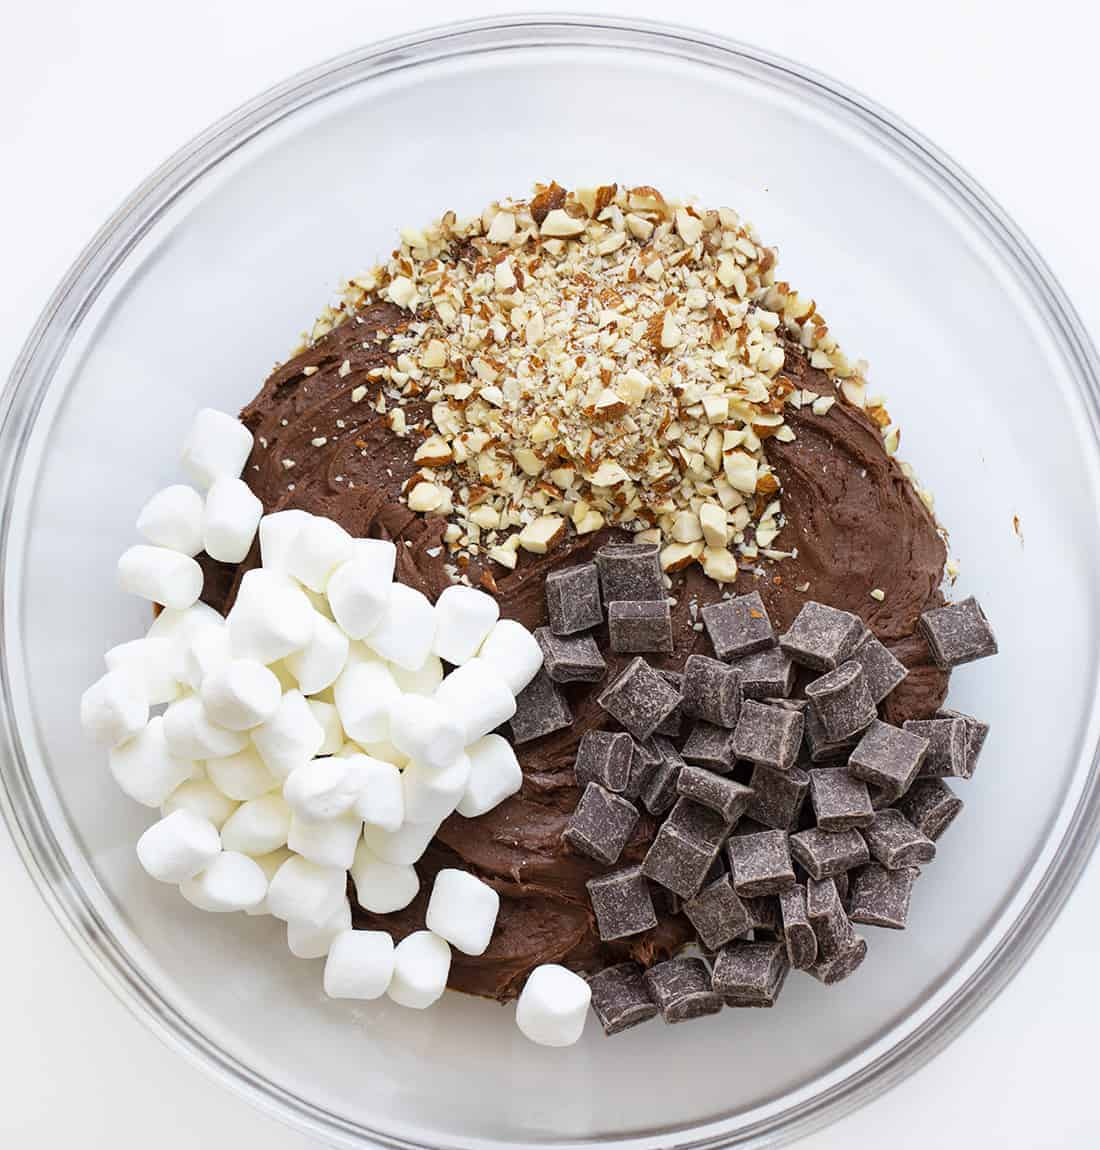 Raw Ingredients for Rocky Road Cookies